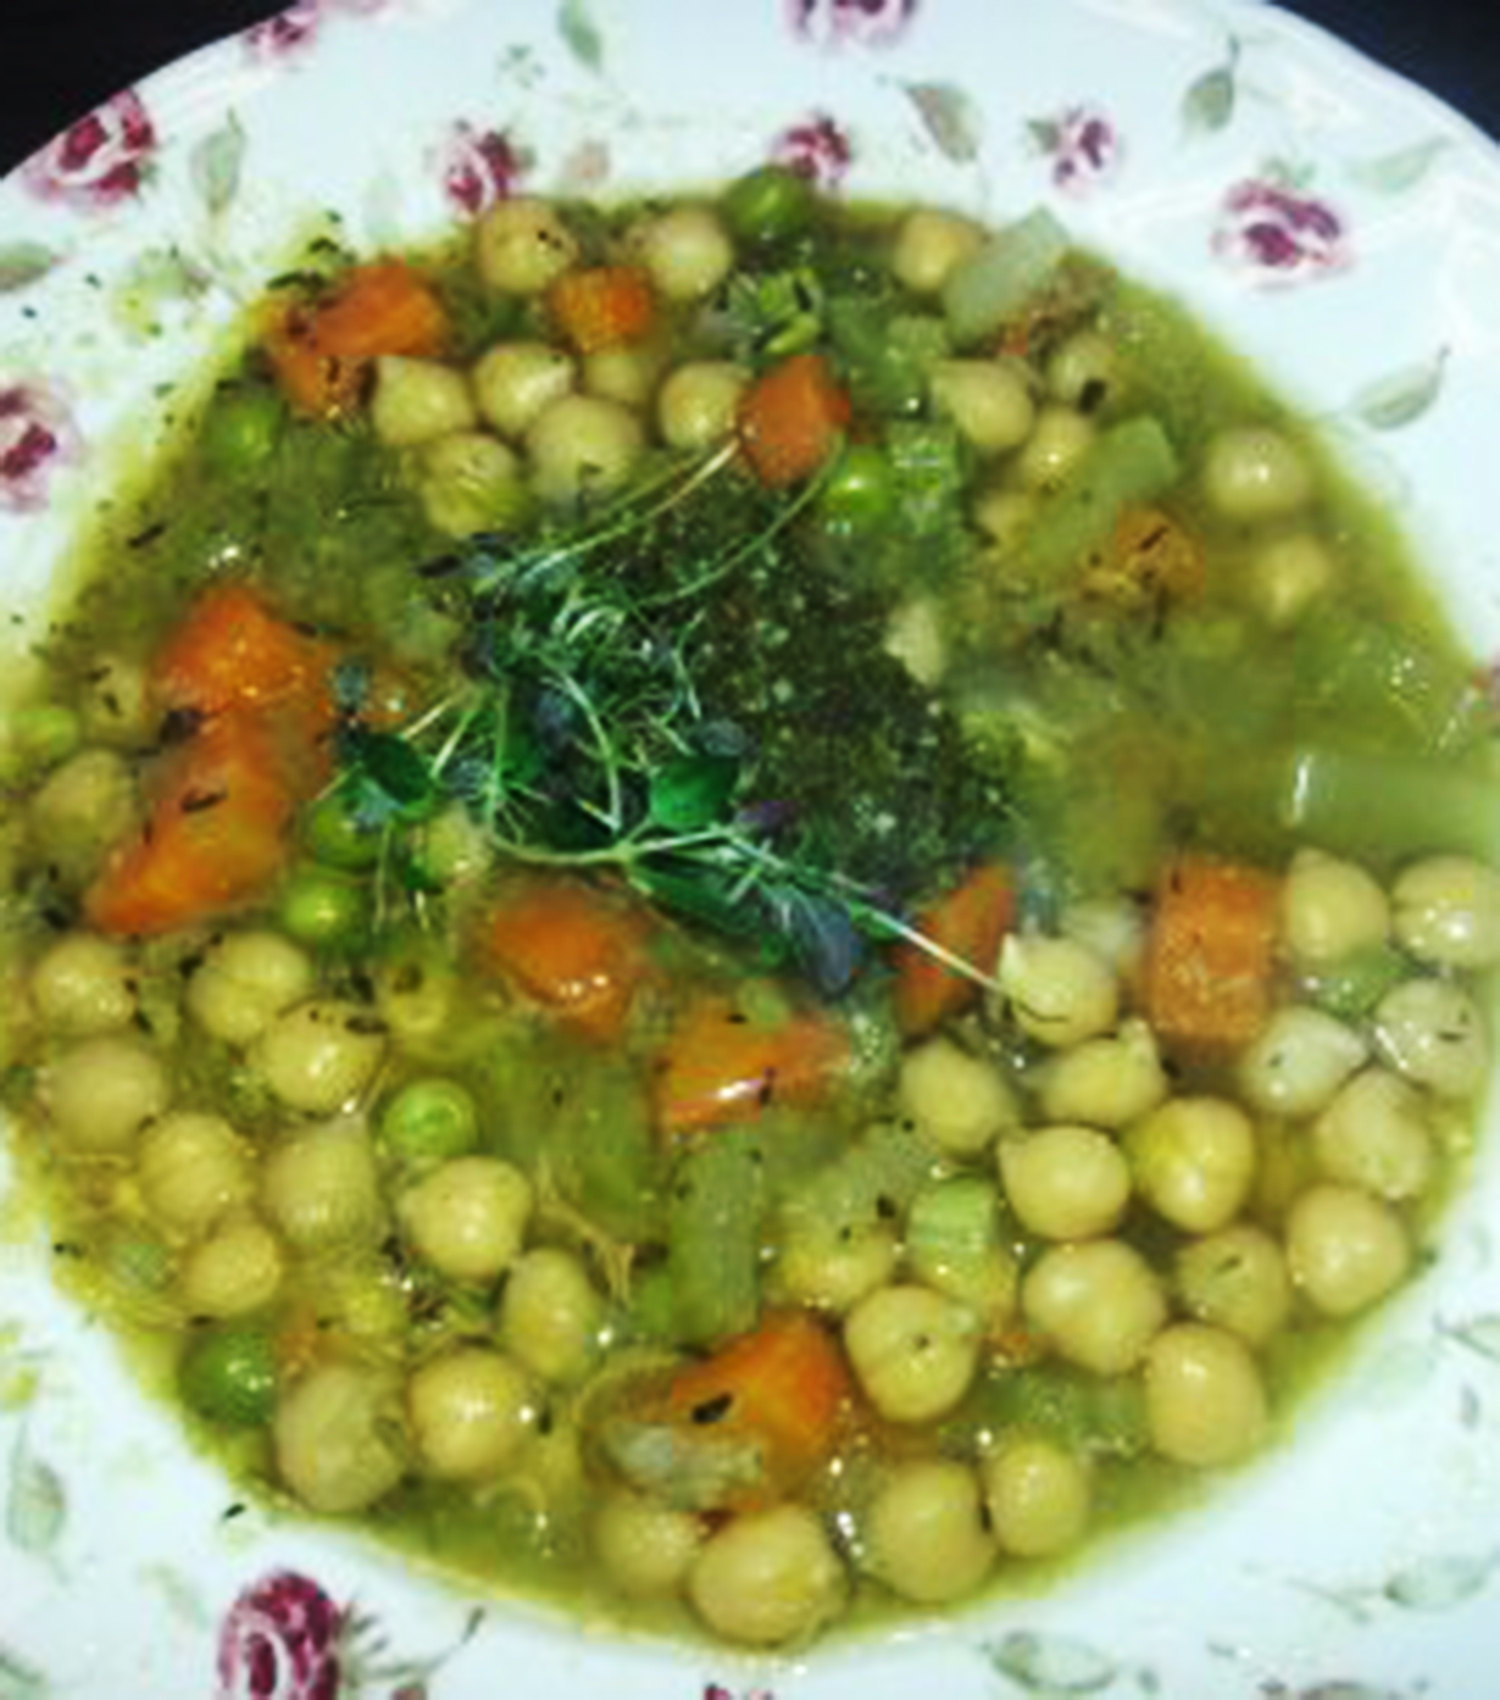 Kikert Suppe, Husets